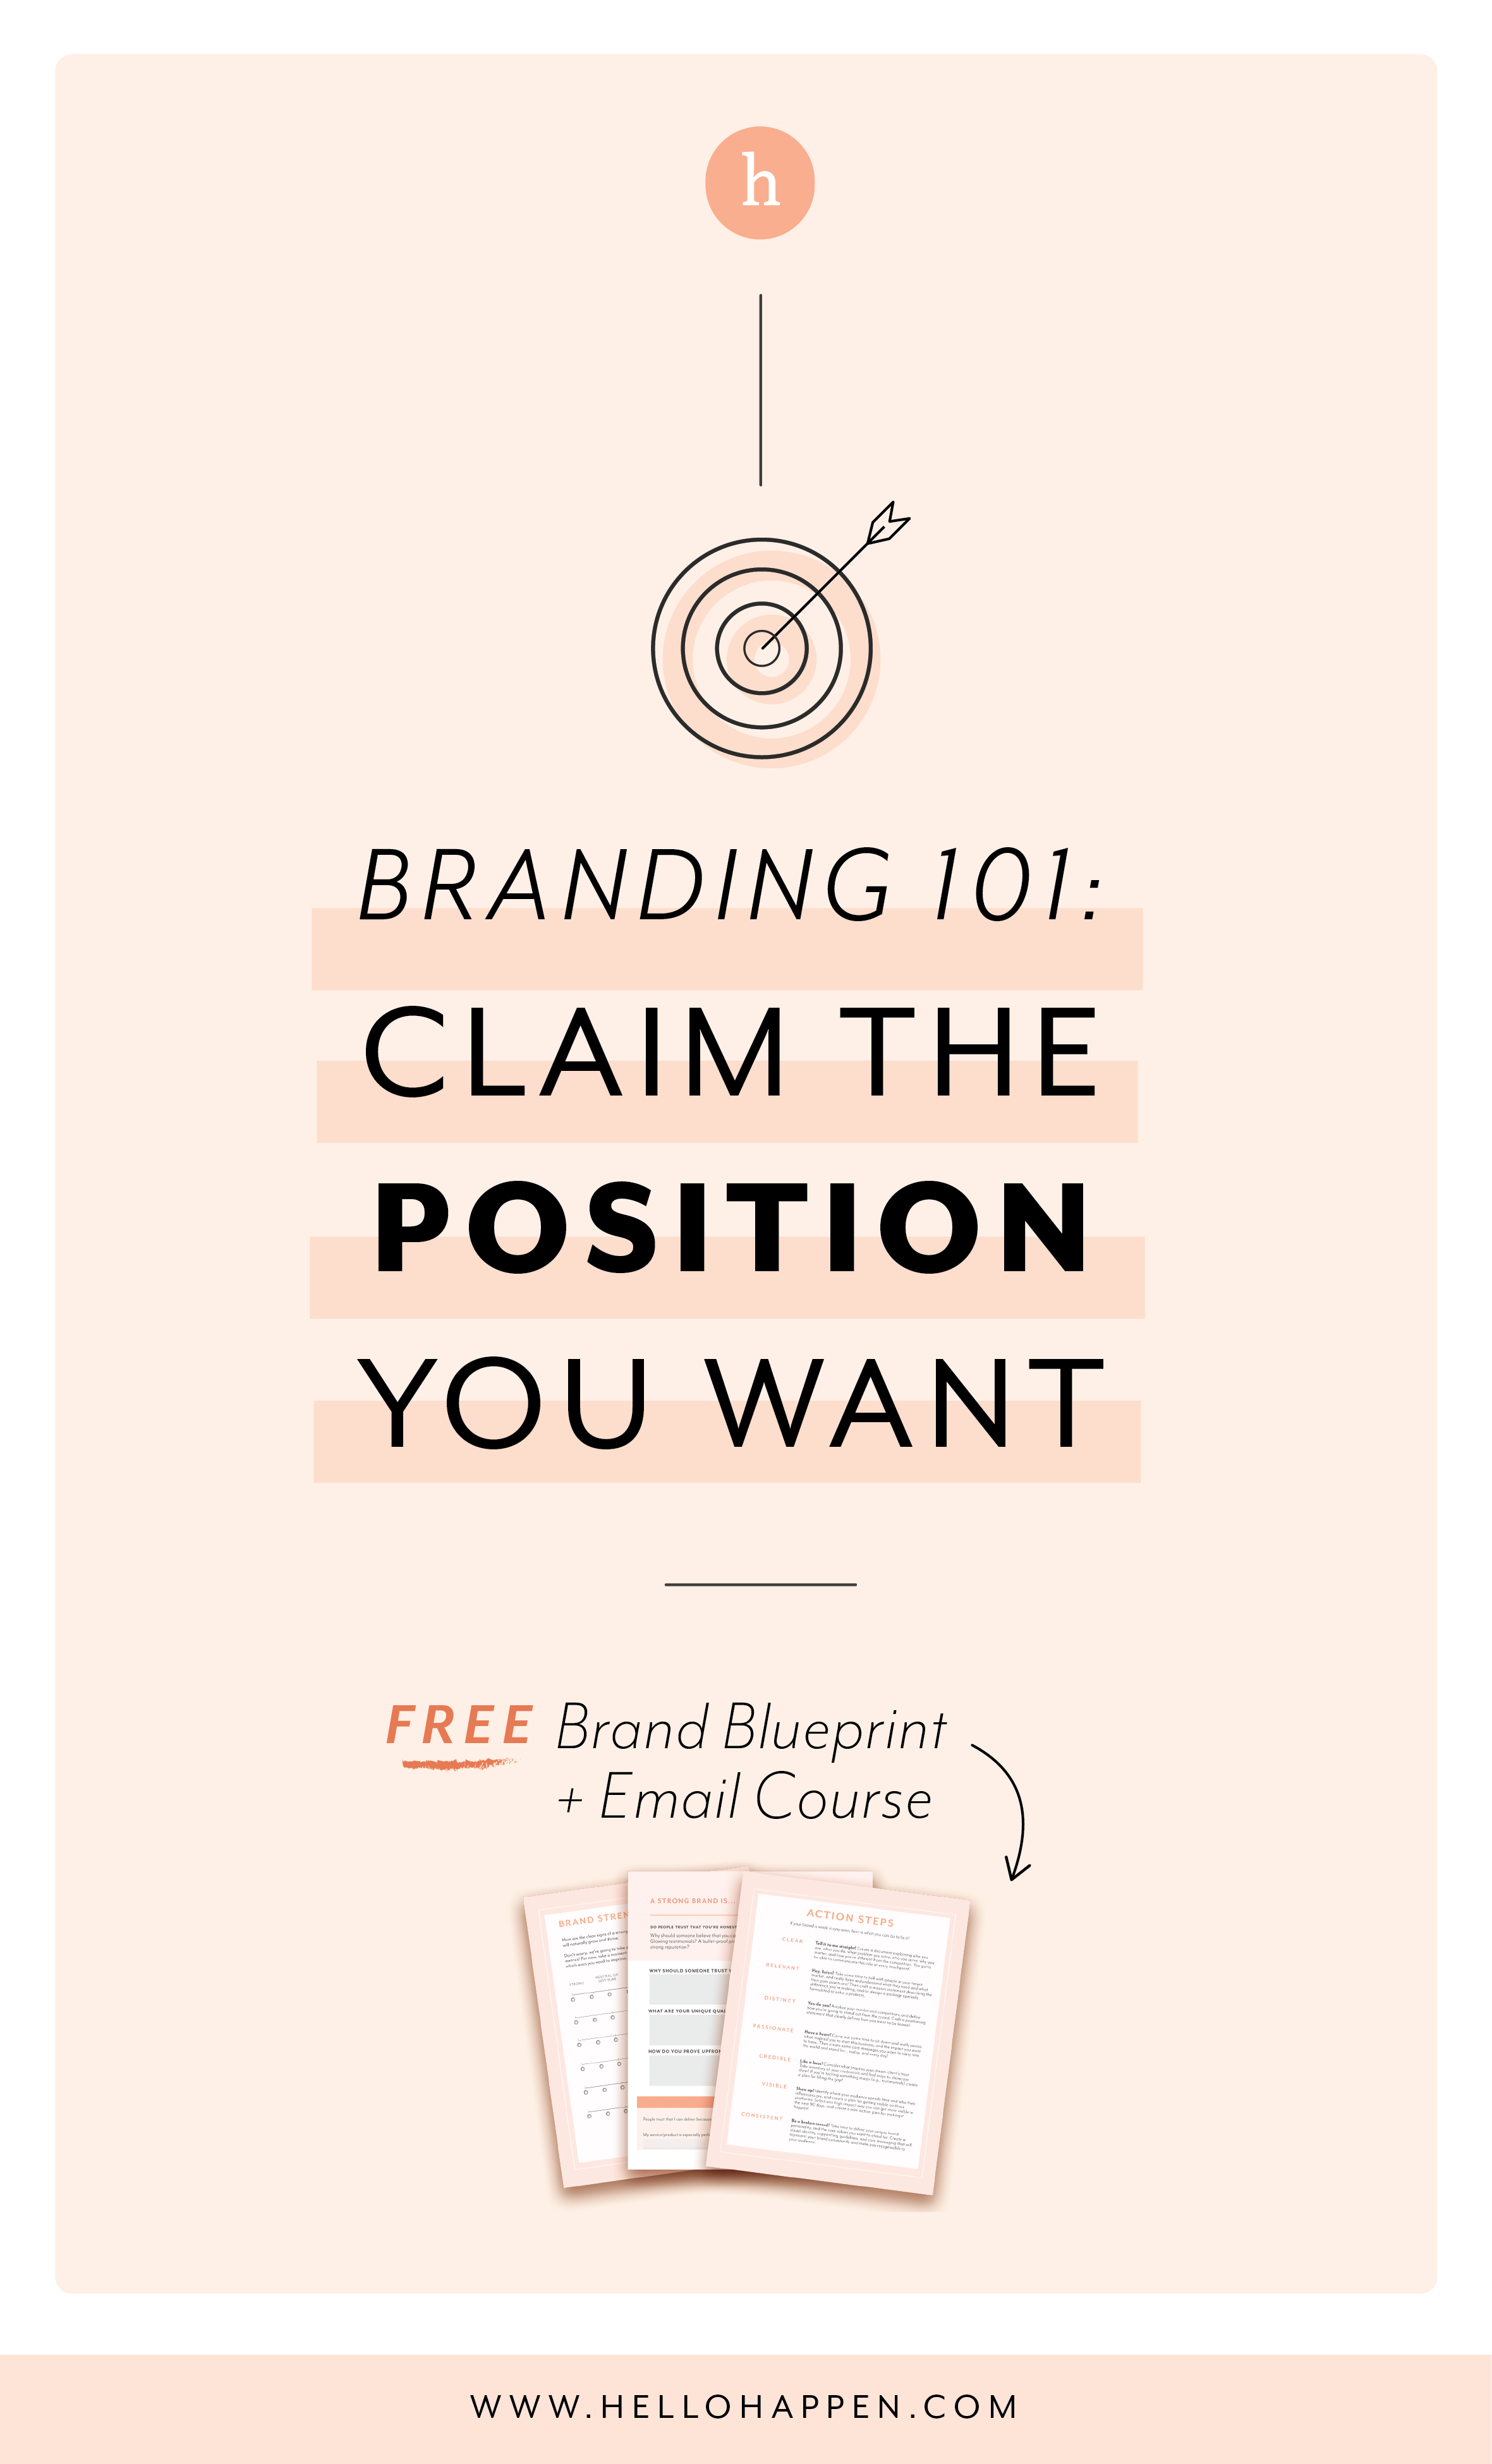 As a business owner, your brand POSITION influences the direction your business will take. Claim the position you want! Read the post, plus download the free Brand Blueprint + email course. #brandcoaching // Hellohappen Brand Strategy